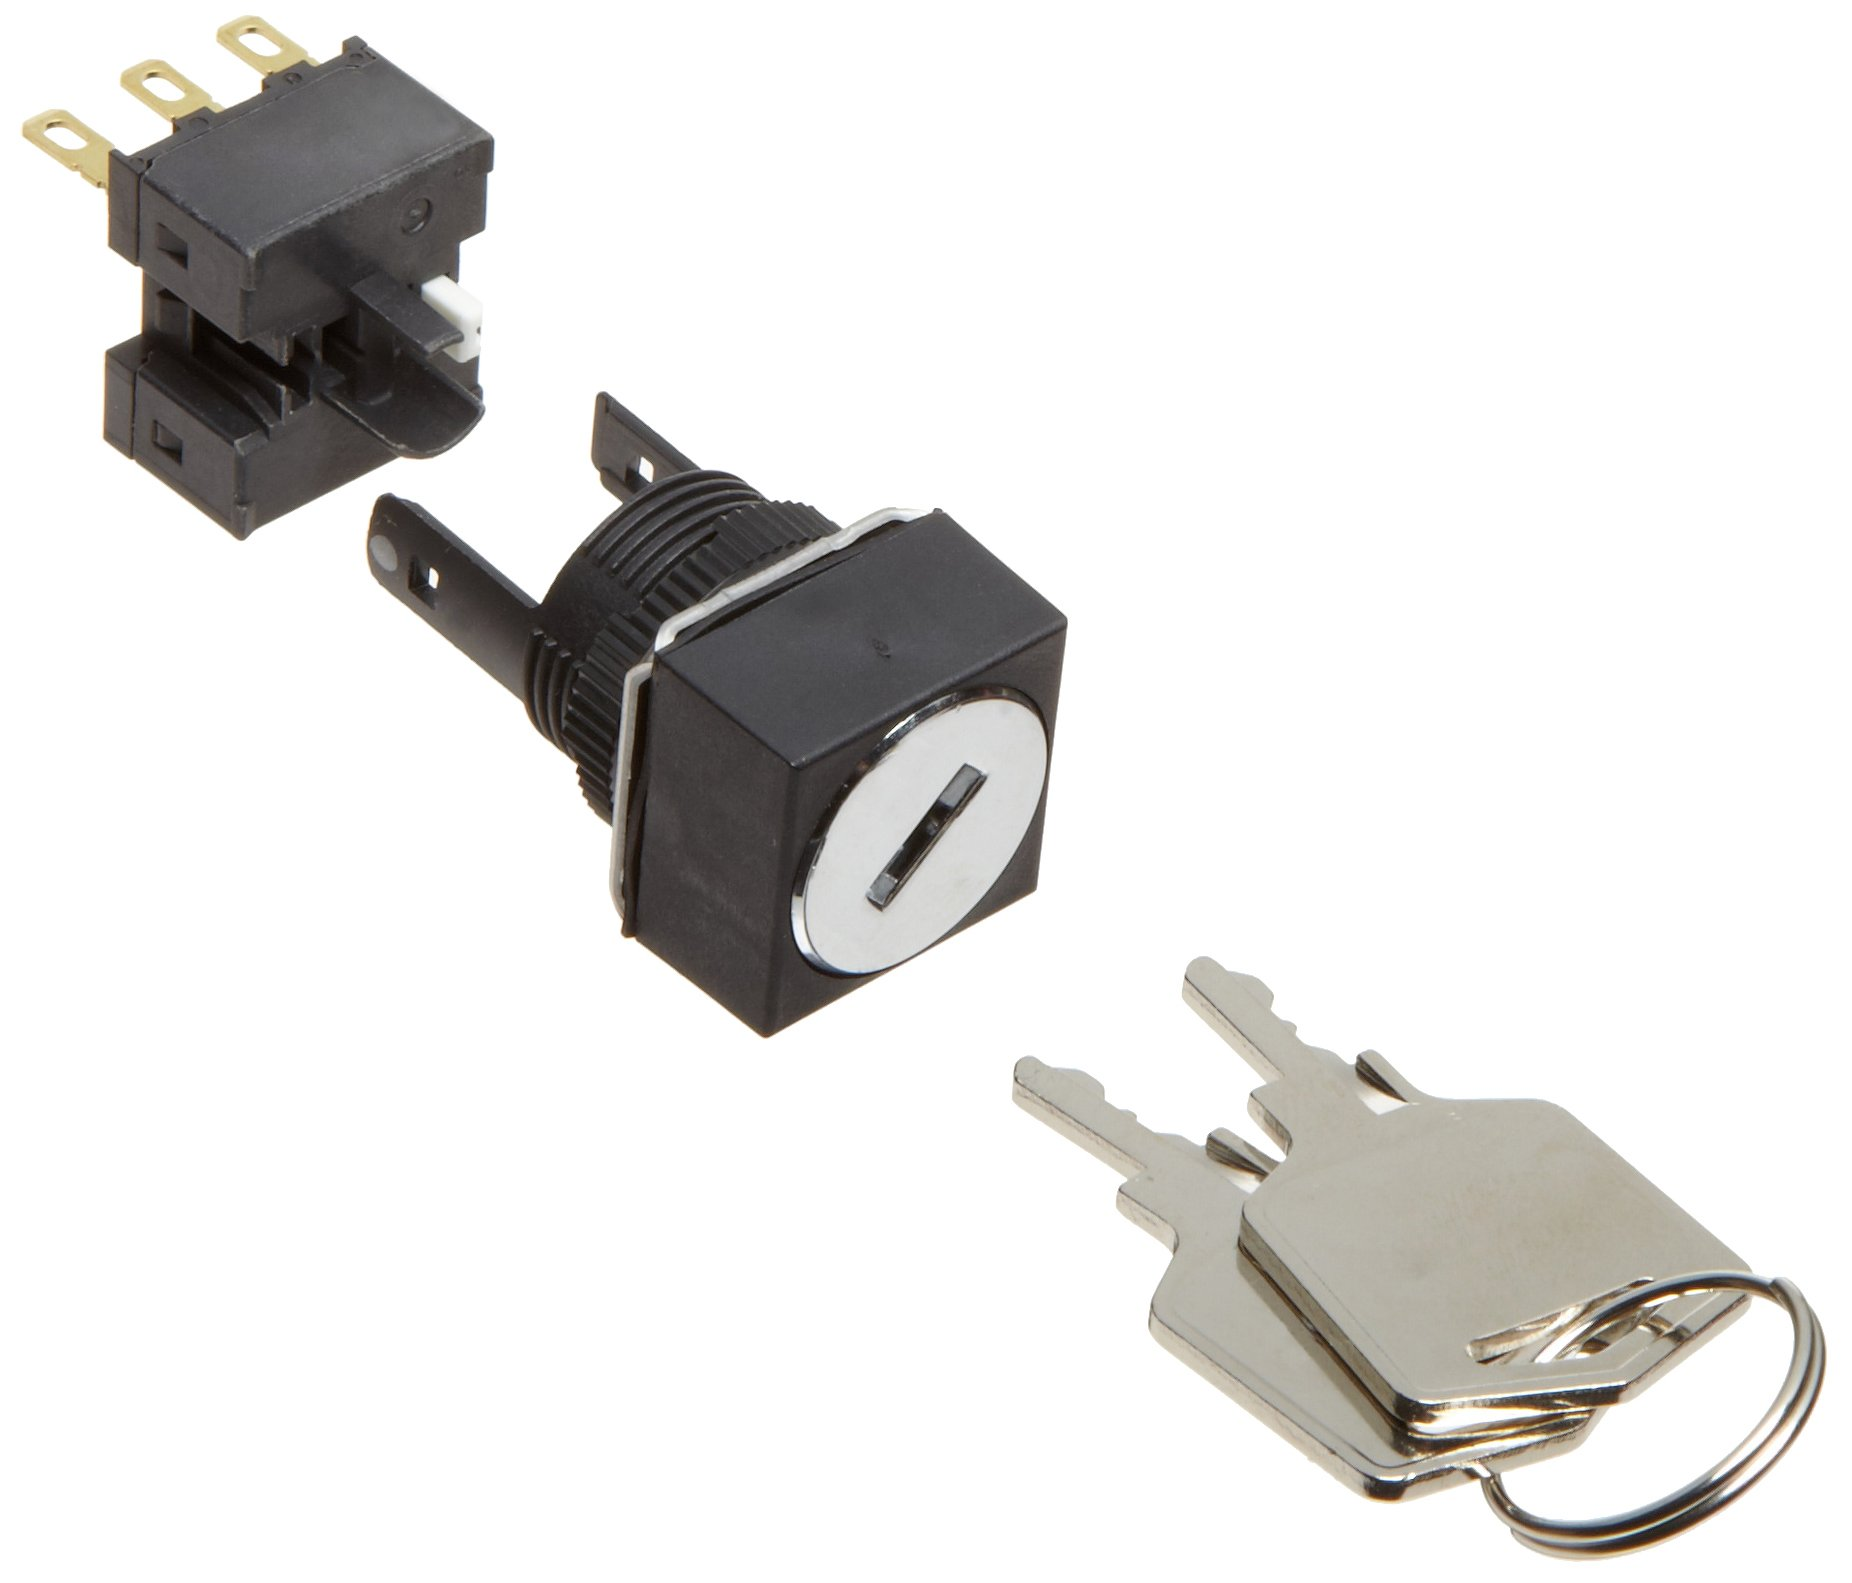 Omron A165K-A2AL-1 Key Type Selector and Switch, Solder Terminal, IP65 Oil Resistant, 16mm Mounting Aperture, 2 Notches, Automatic Reset Method, Left Key Release Postion, Square,Single Pole Double Throw Contacts